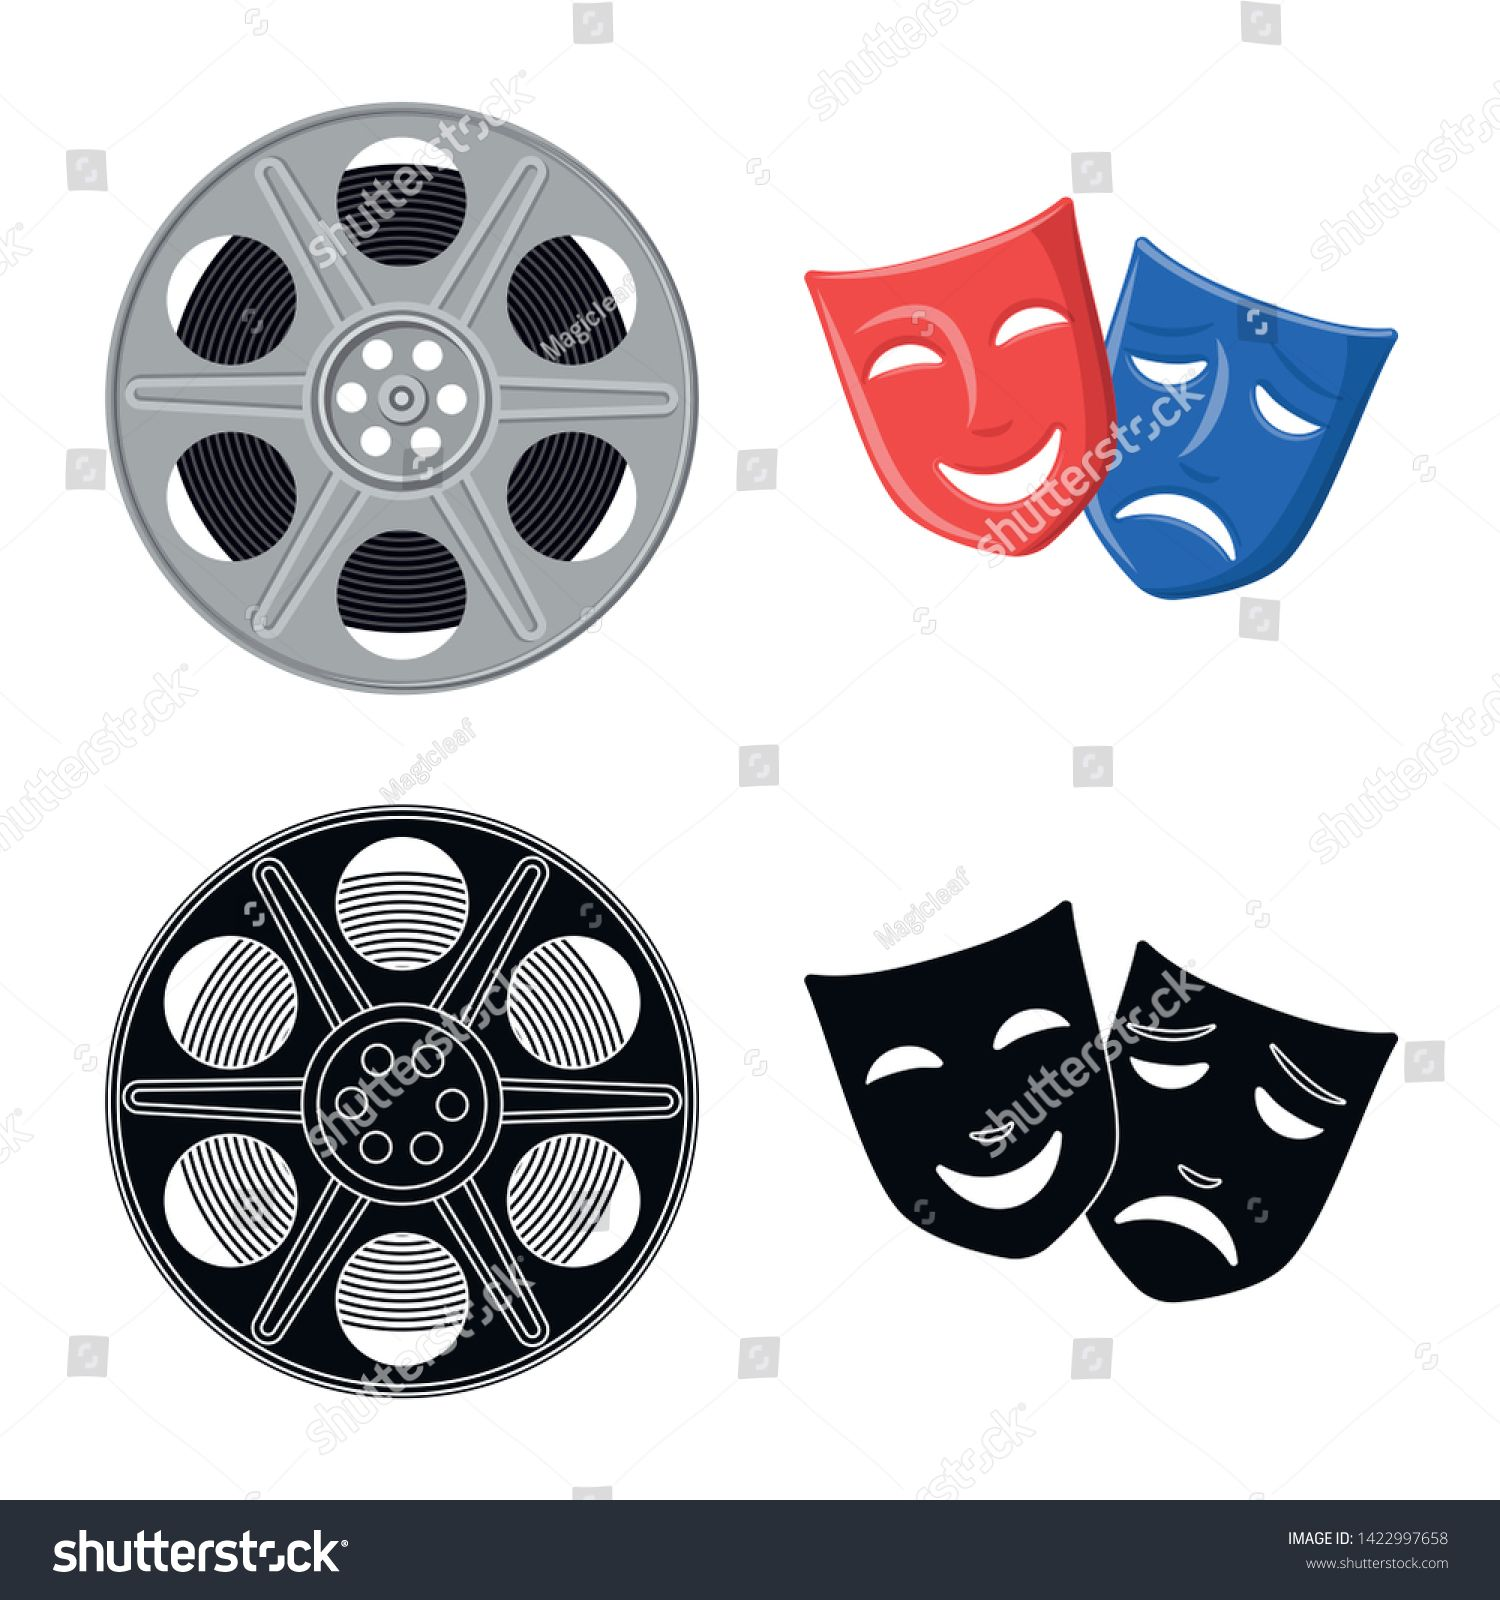 Isolated object of television and filming icon. Set of television and viewing stock vector illustration. #Sponsored , #AFF, #filming#icon#television#Isolated